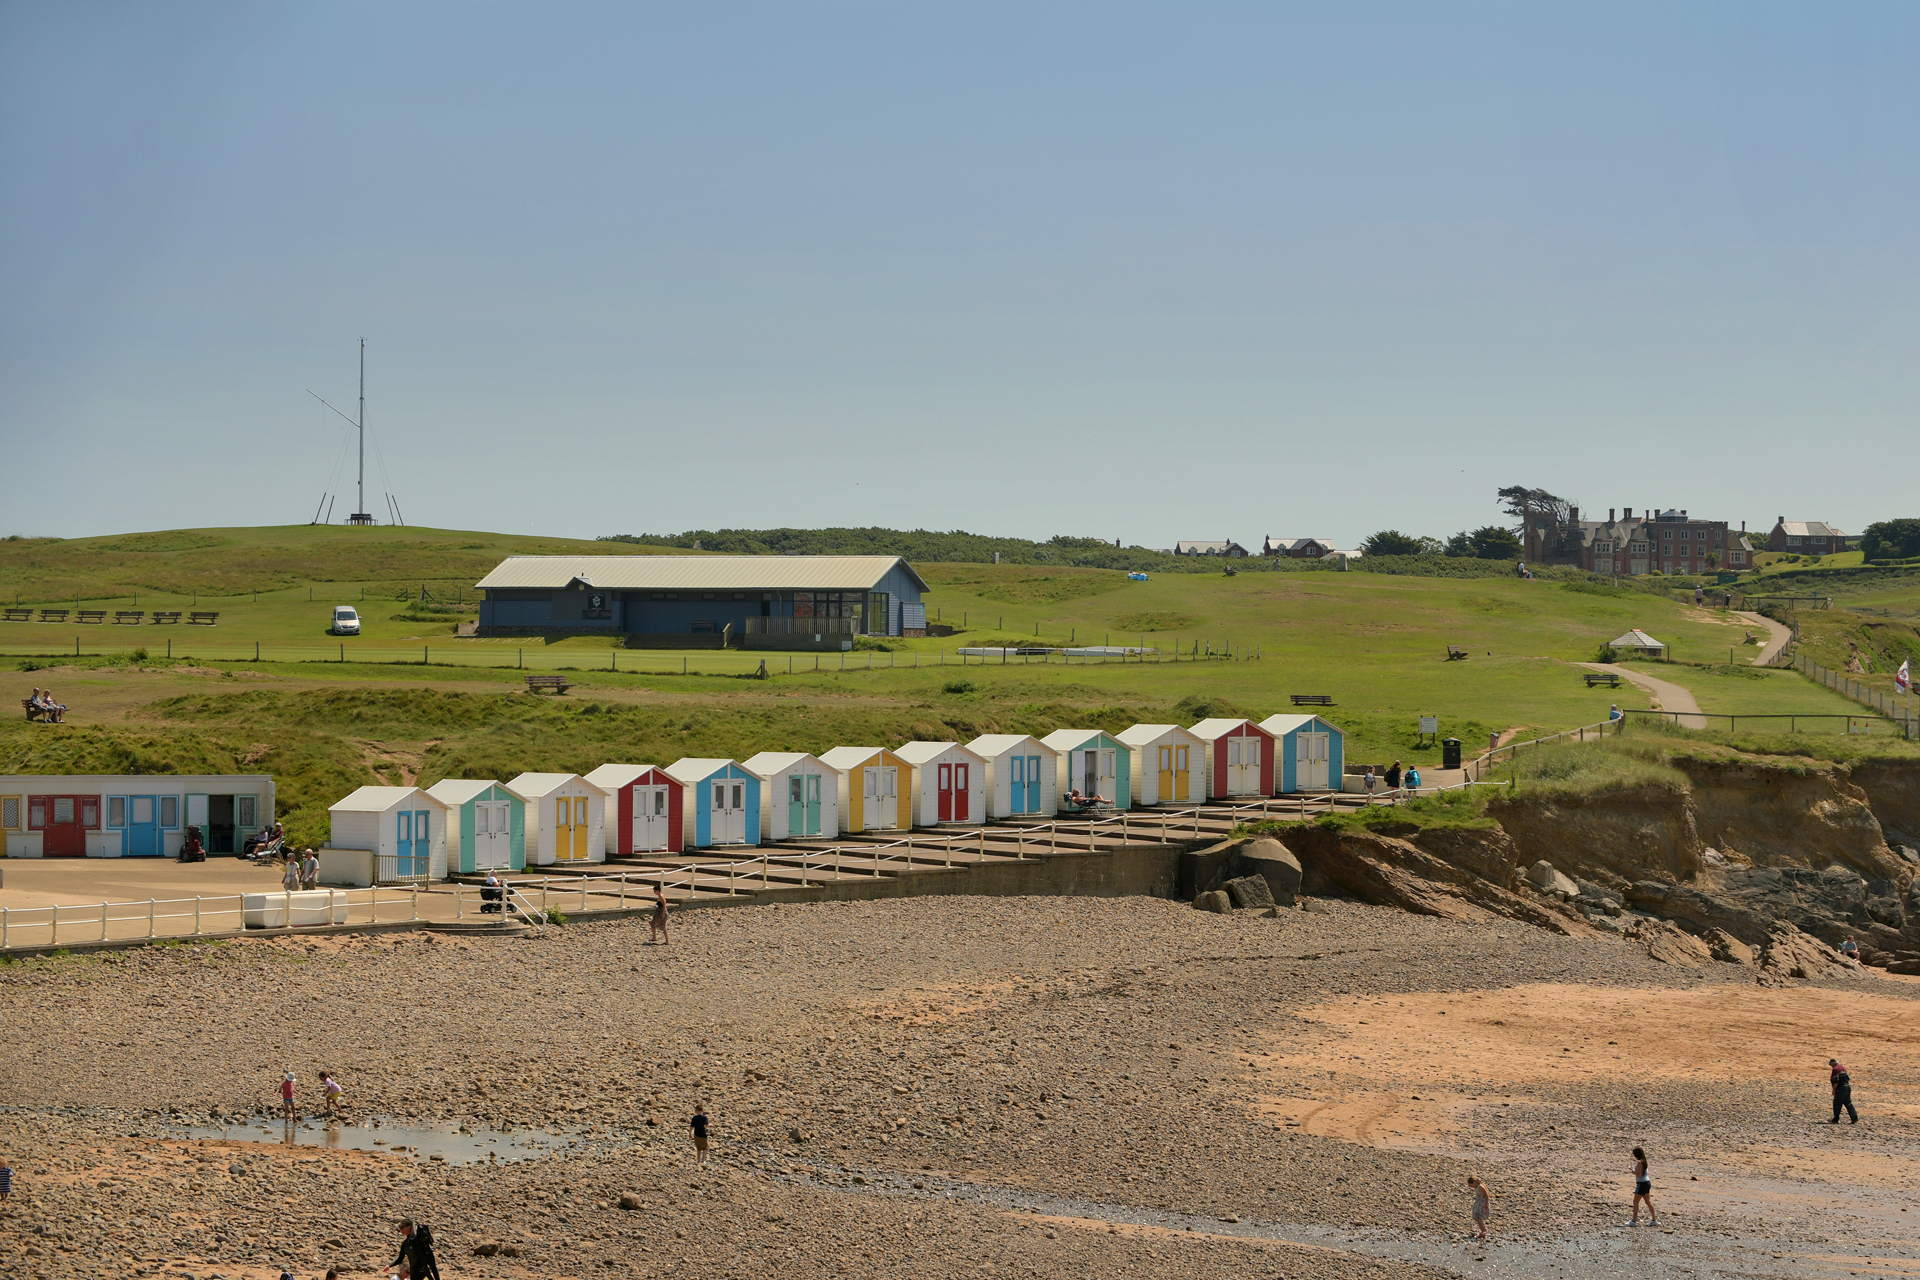 Colourful beach huts at Crooklet's beach in Bude, north Cornwall